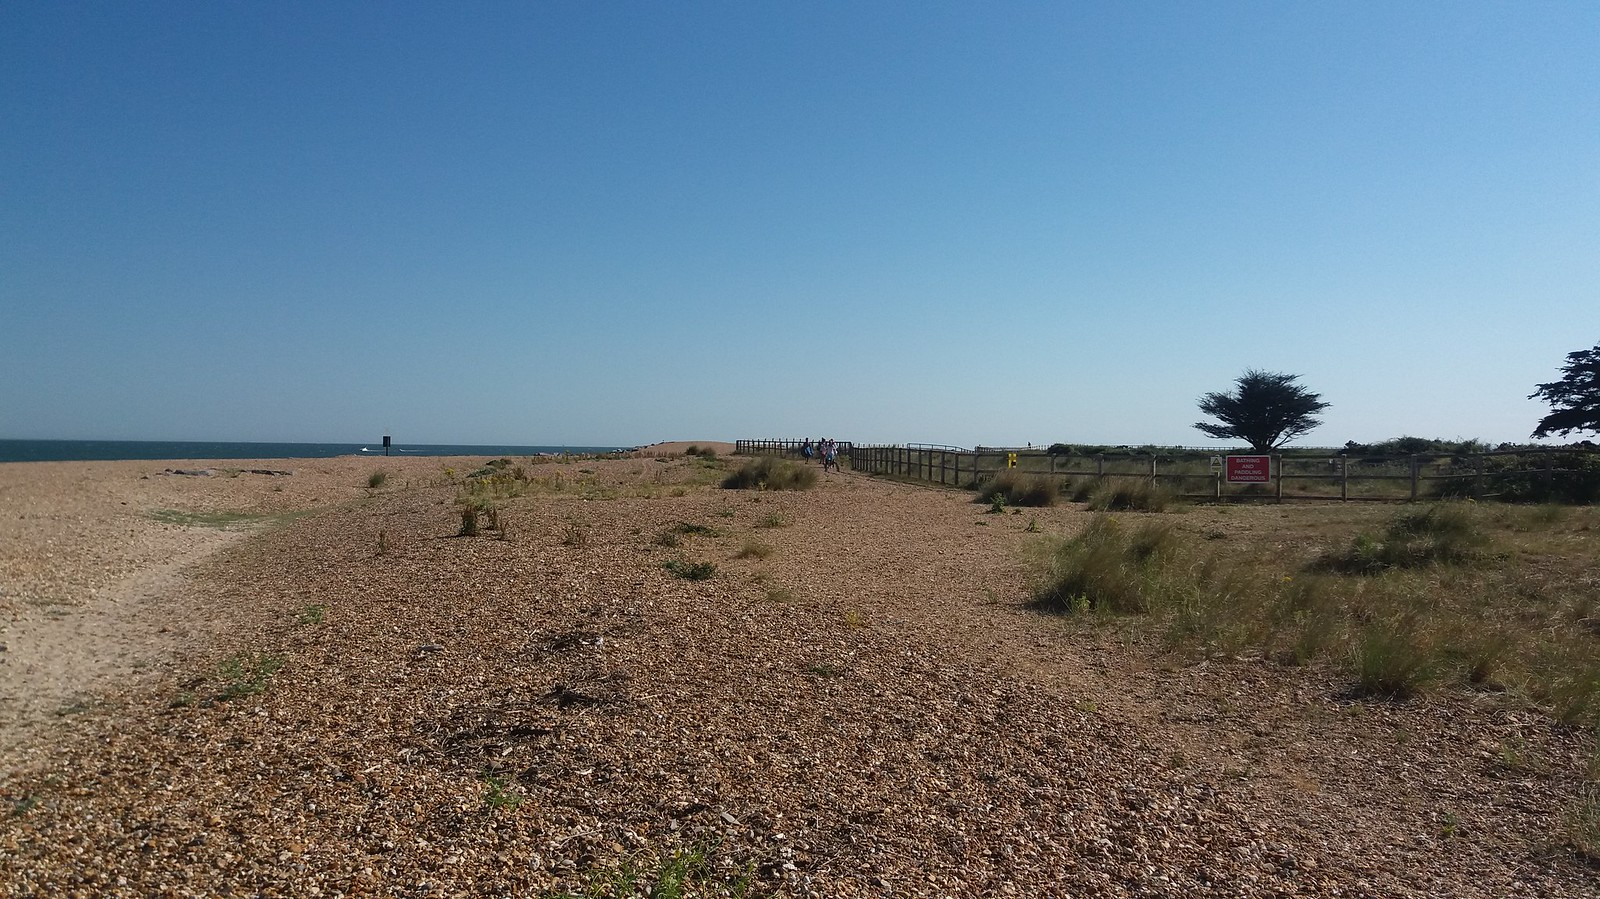 20160719_170733 Looking back towards Eastoke Point and the Sandy Point Nature Reserve path